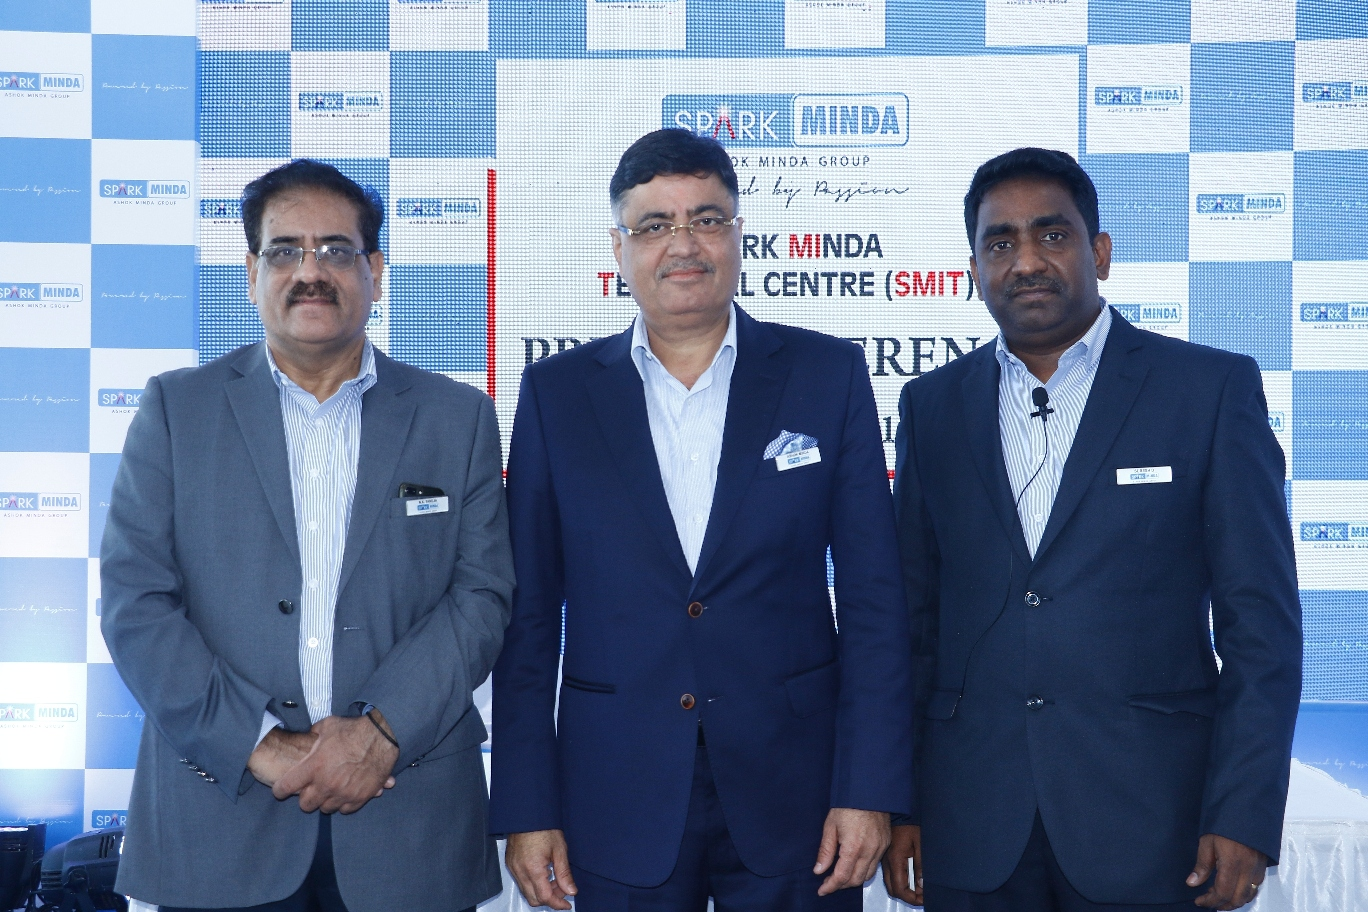 Spark Minda inaugurates new technical centre in Pune ~ www pune-news com